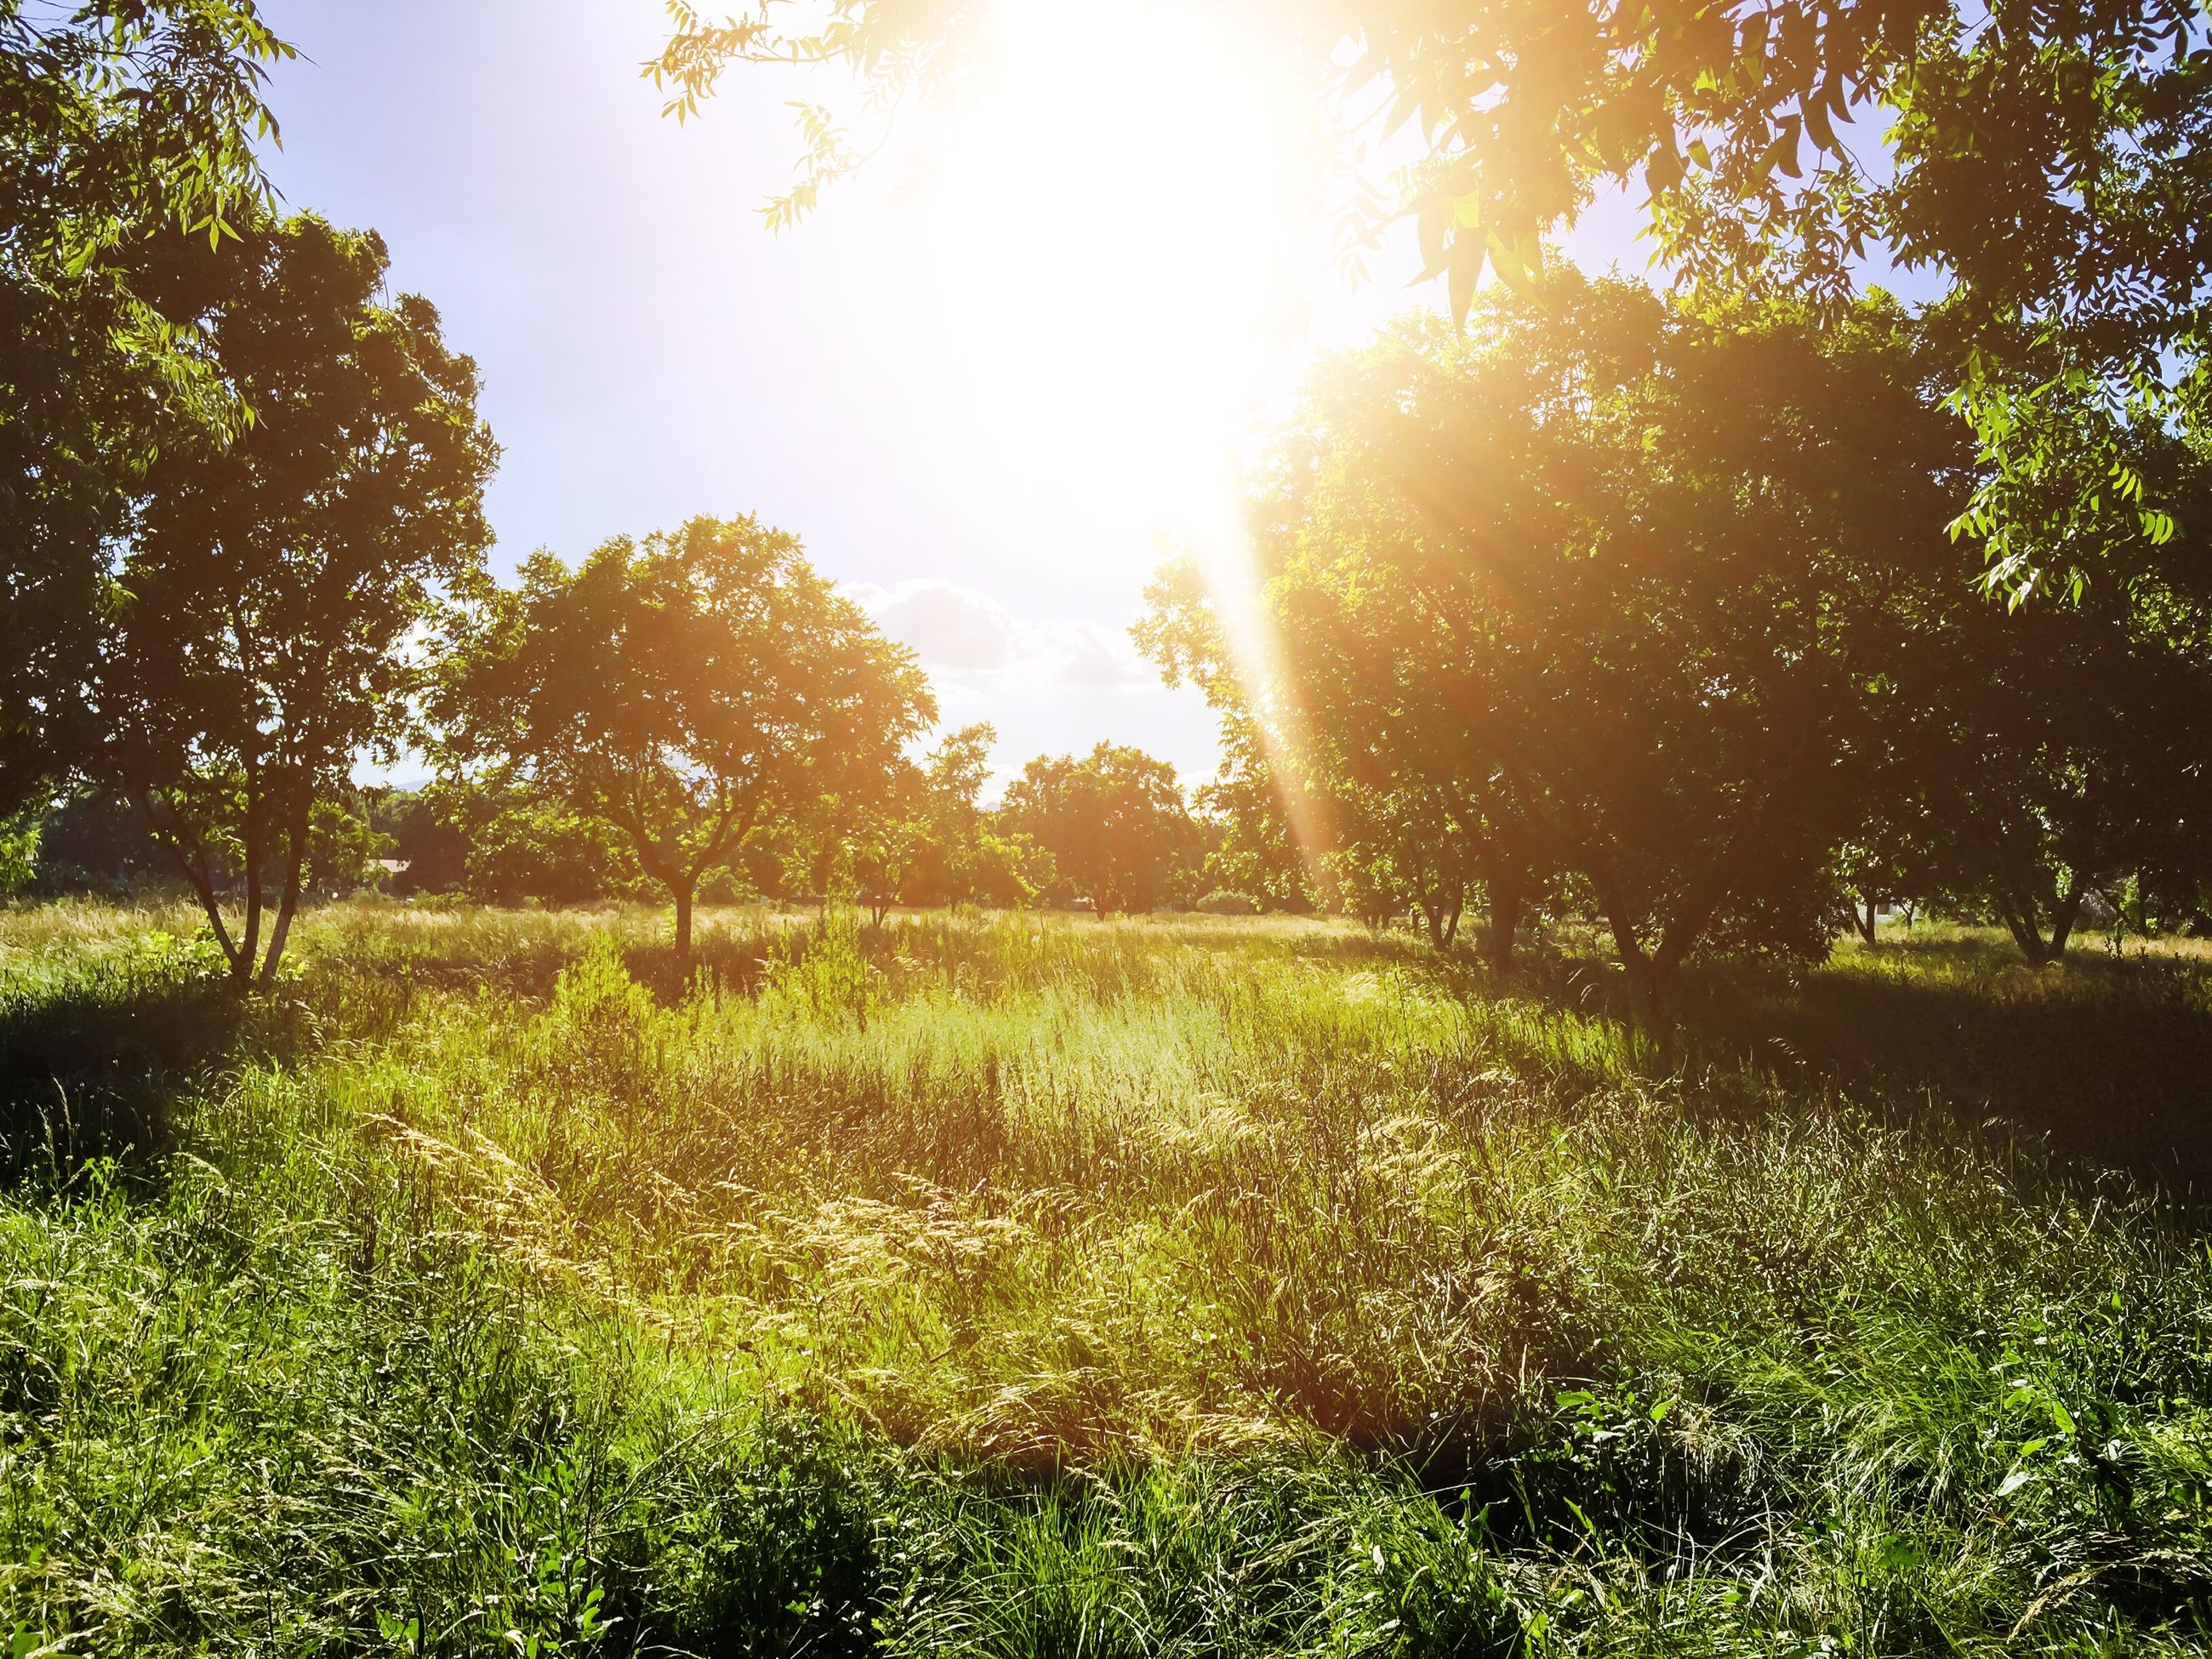 tree, grass, growth, tranquility, sunlight, tranquil scene, green color, field, beauty in nature, nature, grassy, sun, scenics, landscape, sunbeam, sky, shadow, no people, branch, clear sky